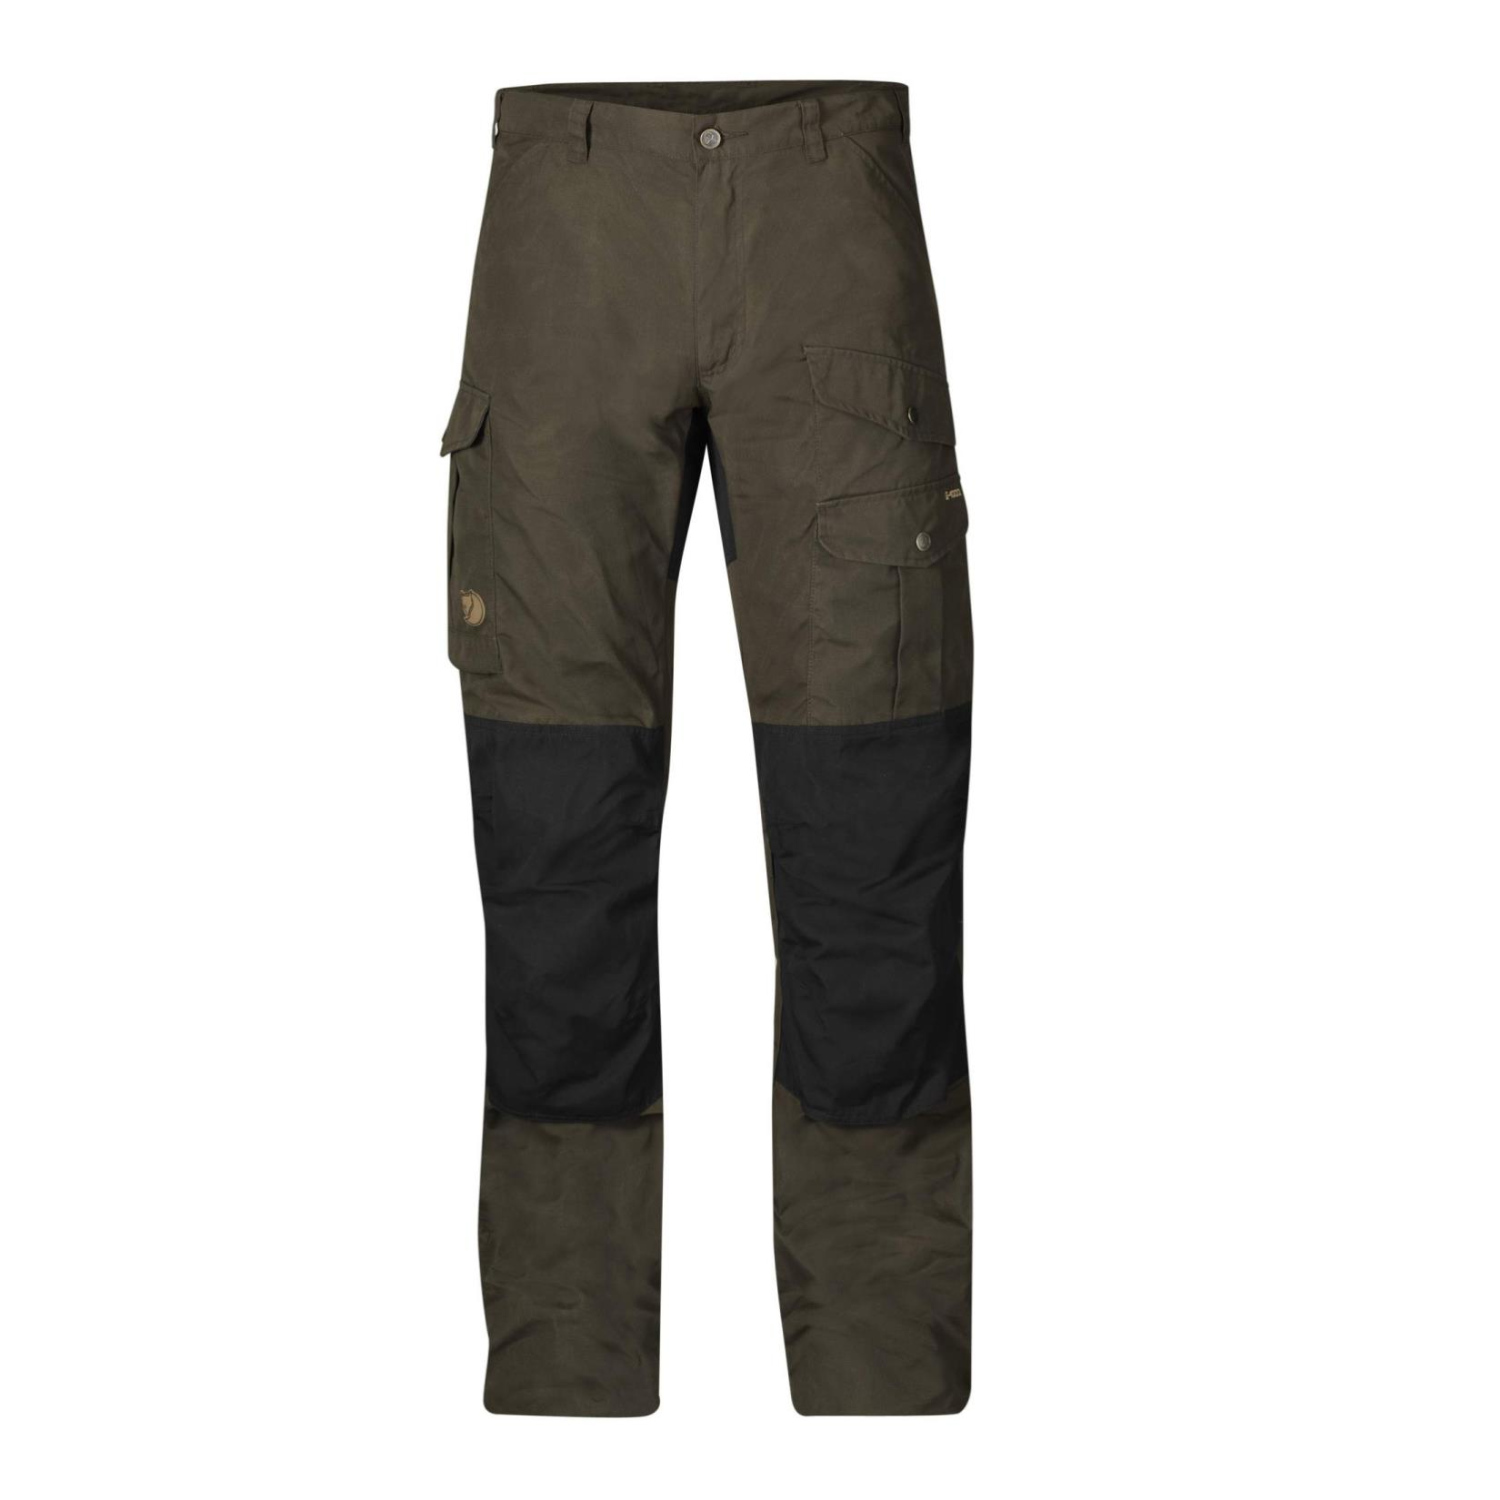 Herren Wanderhose Fjällräven Barents Pro Men Long